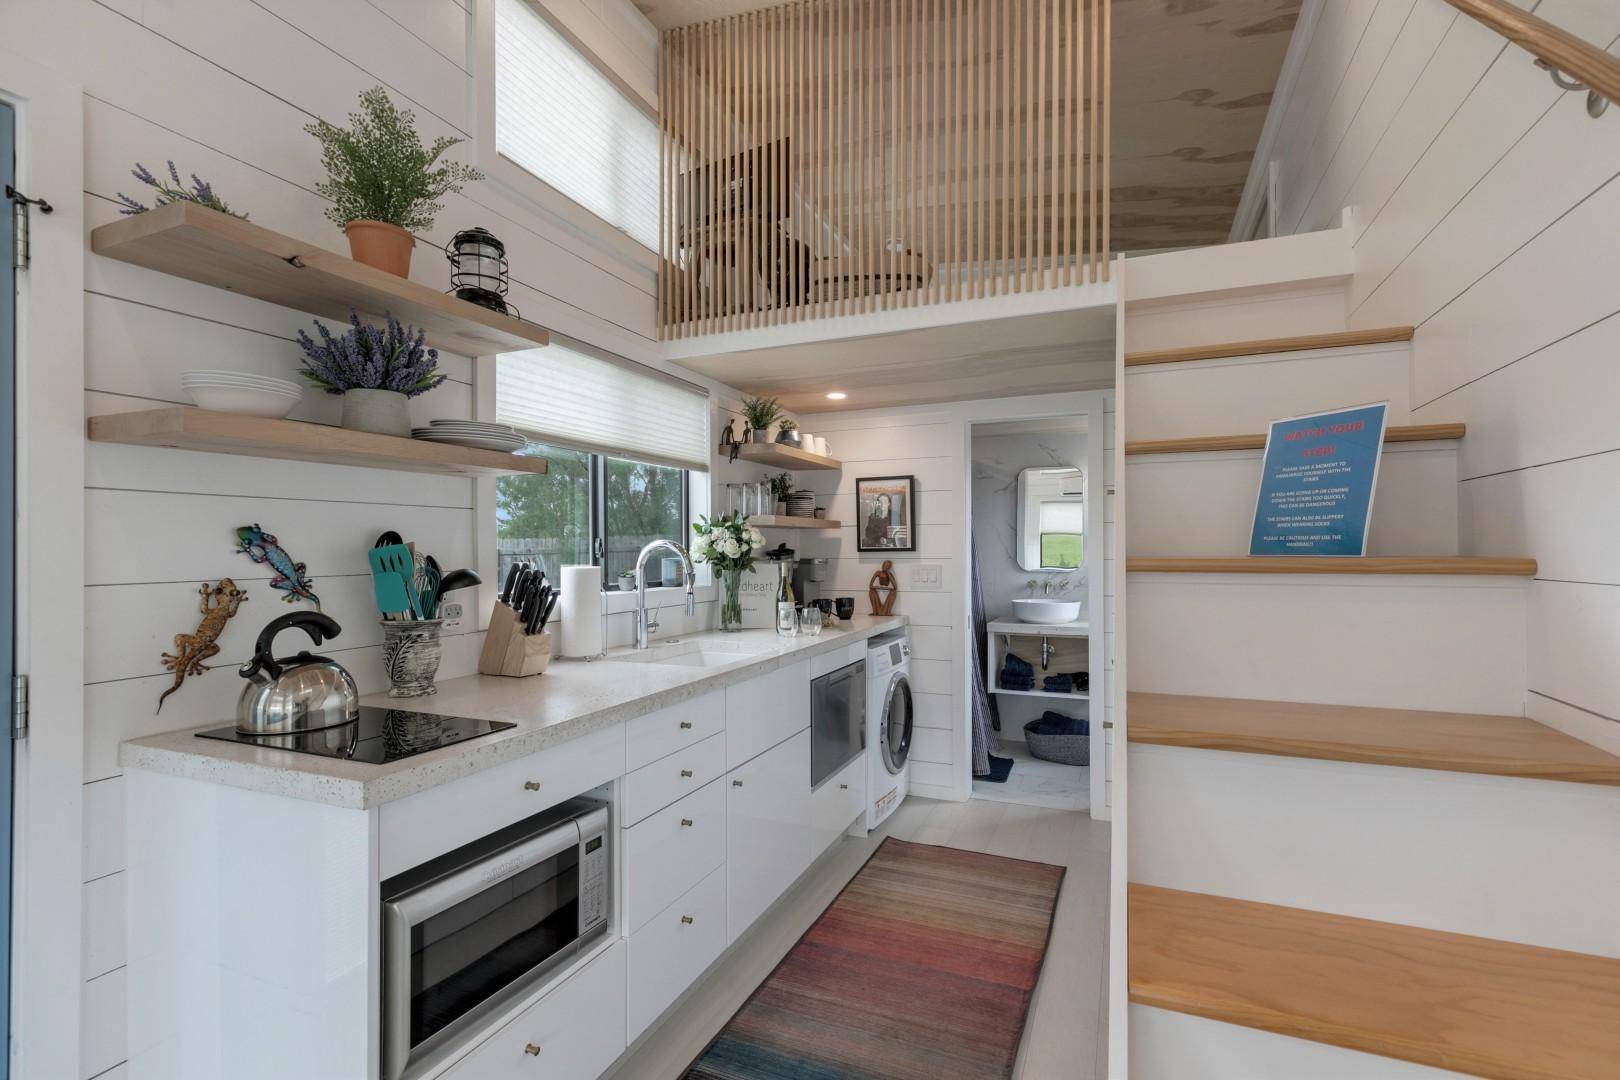 NEW! Luxury Tiny Home w/ Hot Tub&Grill